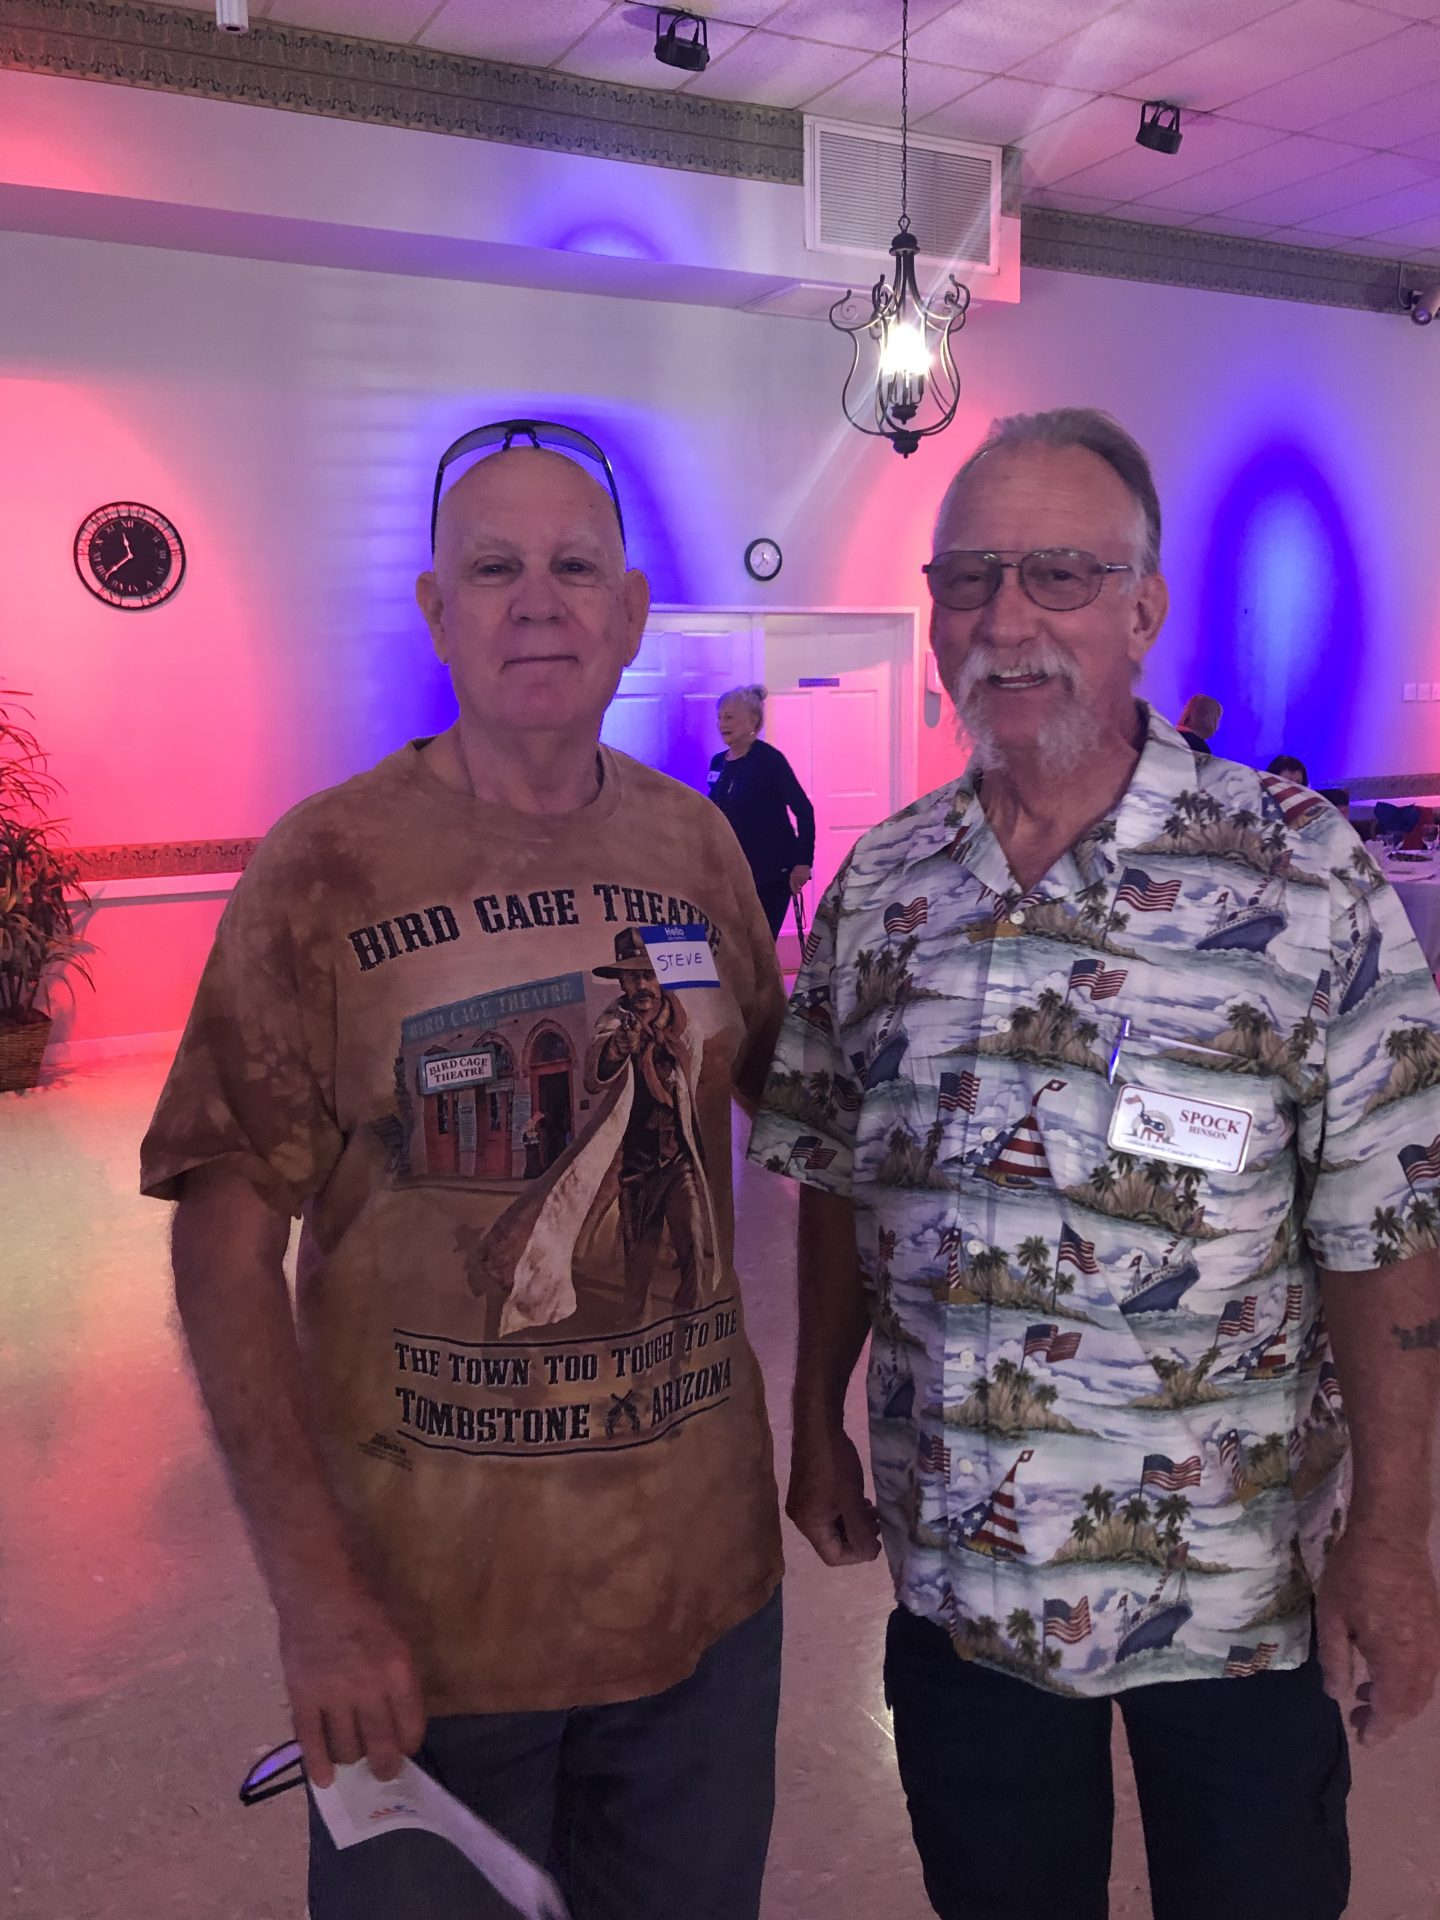 Steve was an awesome friend and a man's man. Steve came to the Republican Liberty Caucus luncheon in Daytona in July and we had a good time. I feel really fortunate to have gotten to spend some time with him.